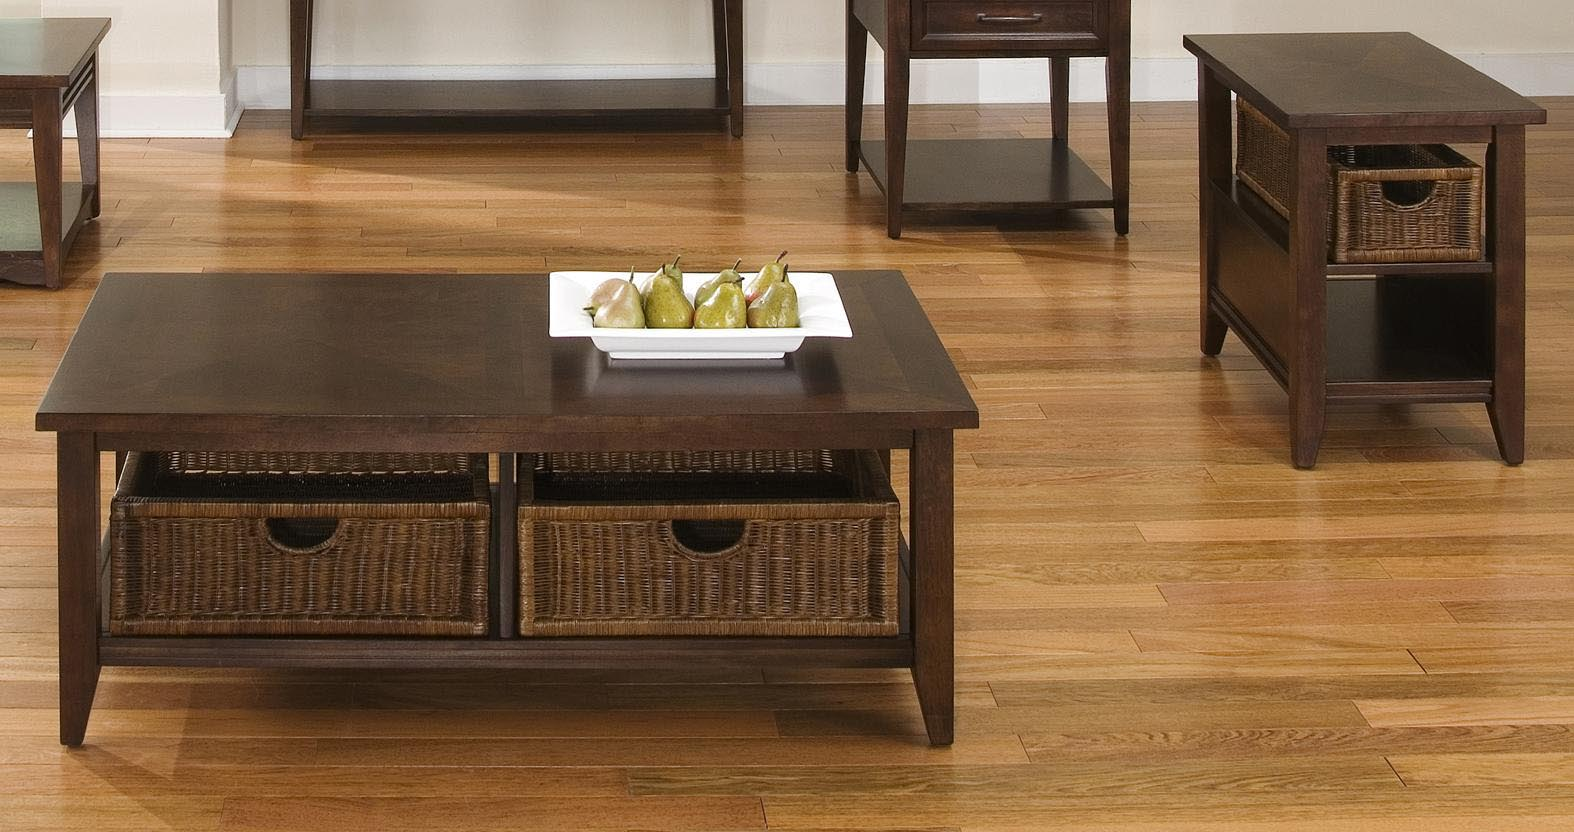 mission style coffee table and end tables design ideas french heritage best dining over the nightstand large square wood gray top two living room solid occasional electric mower